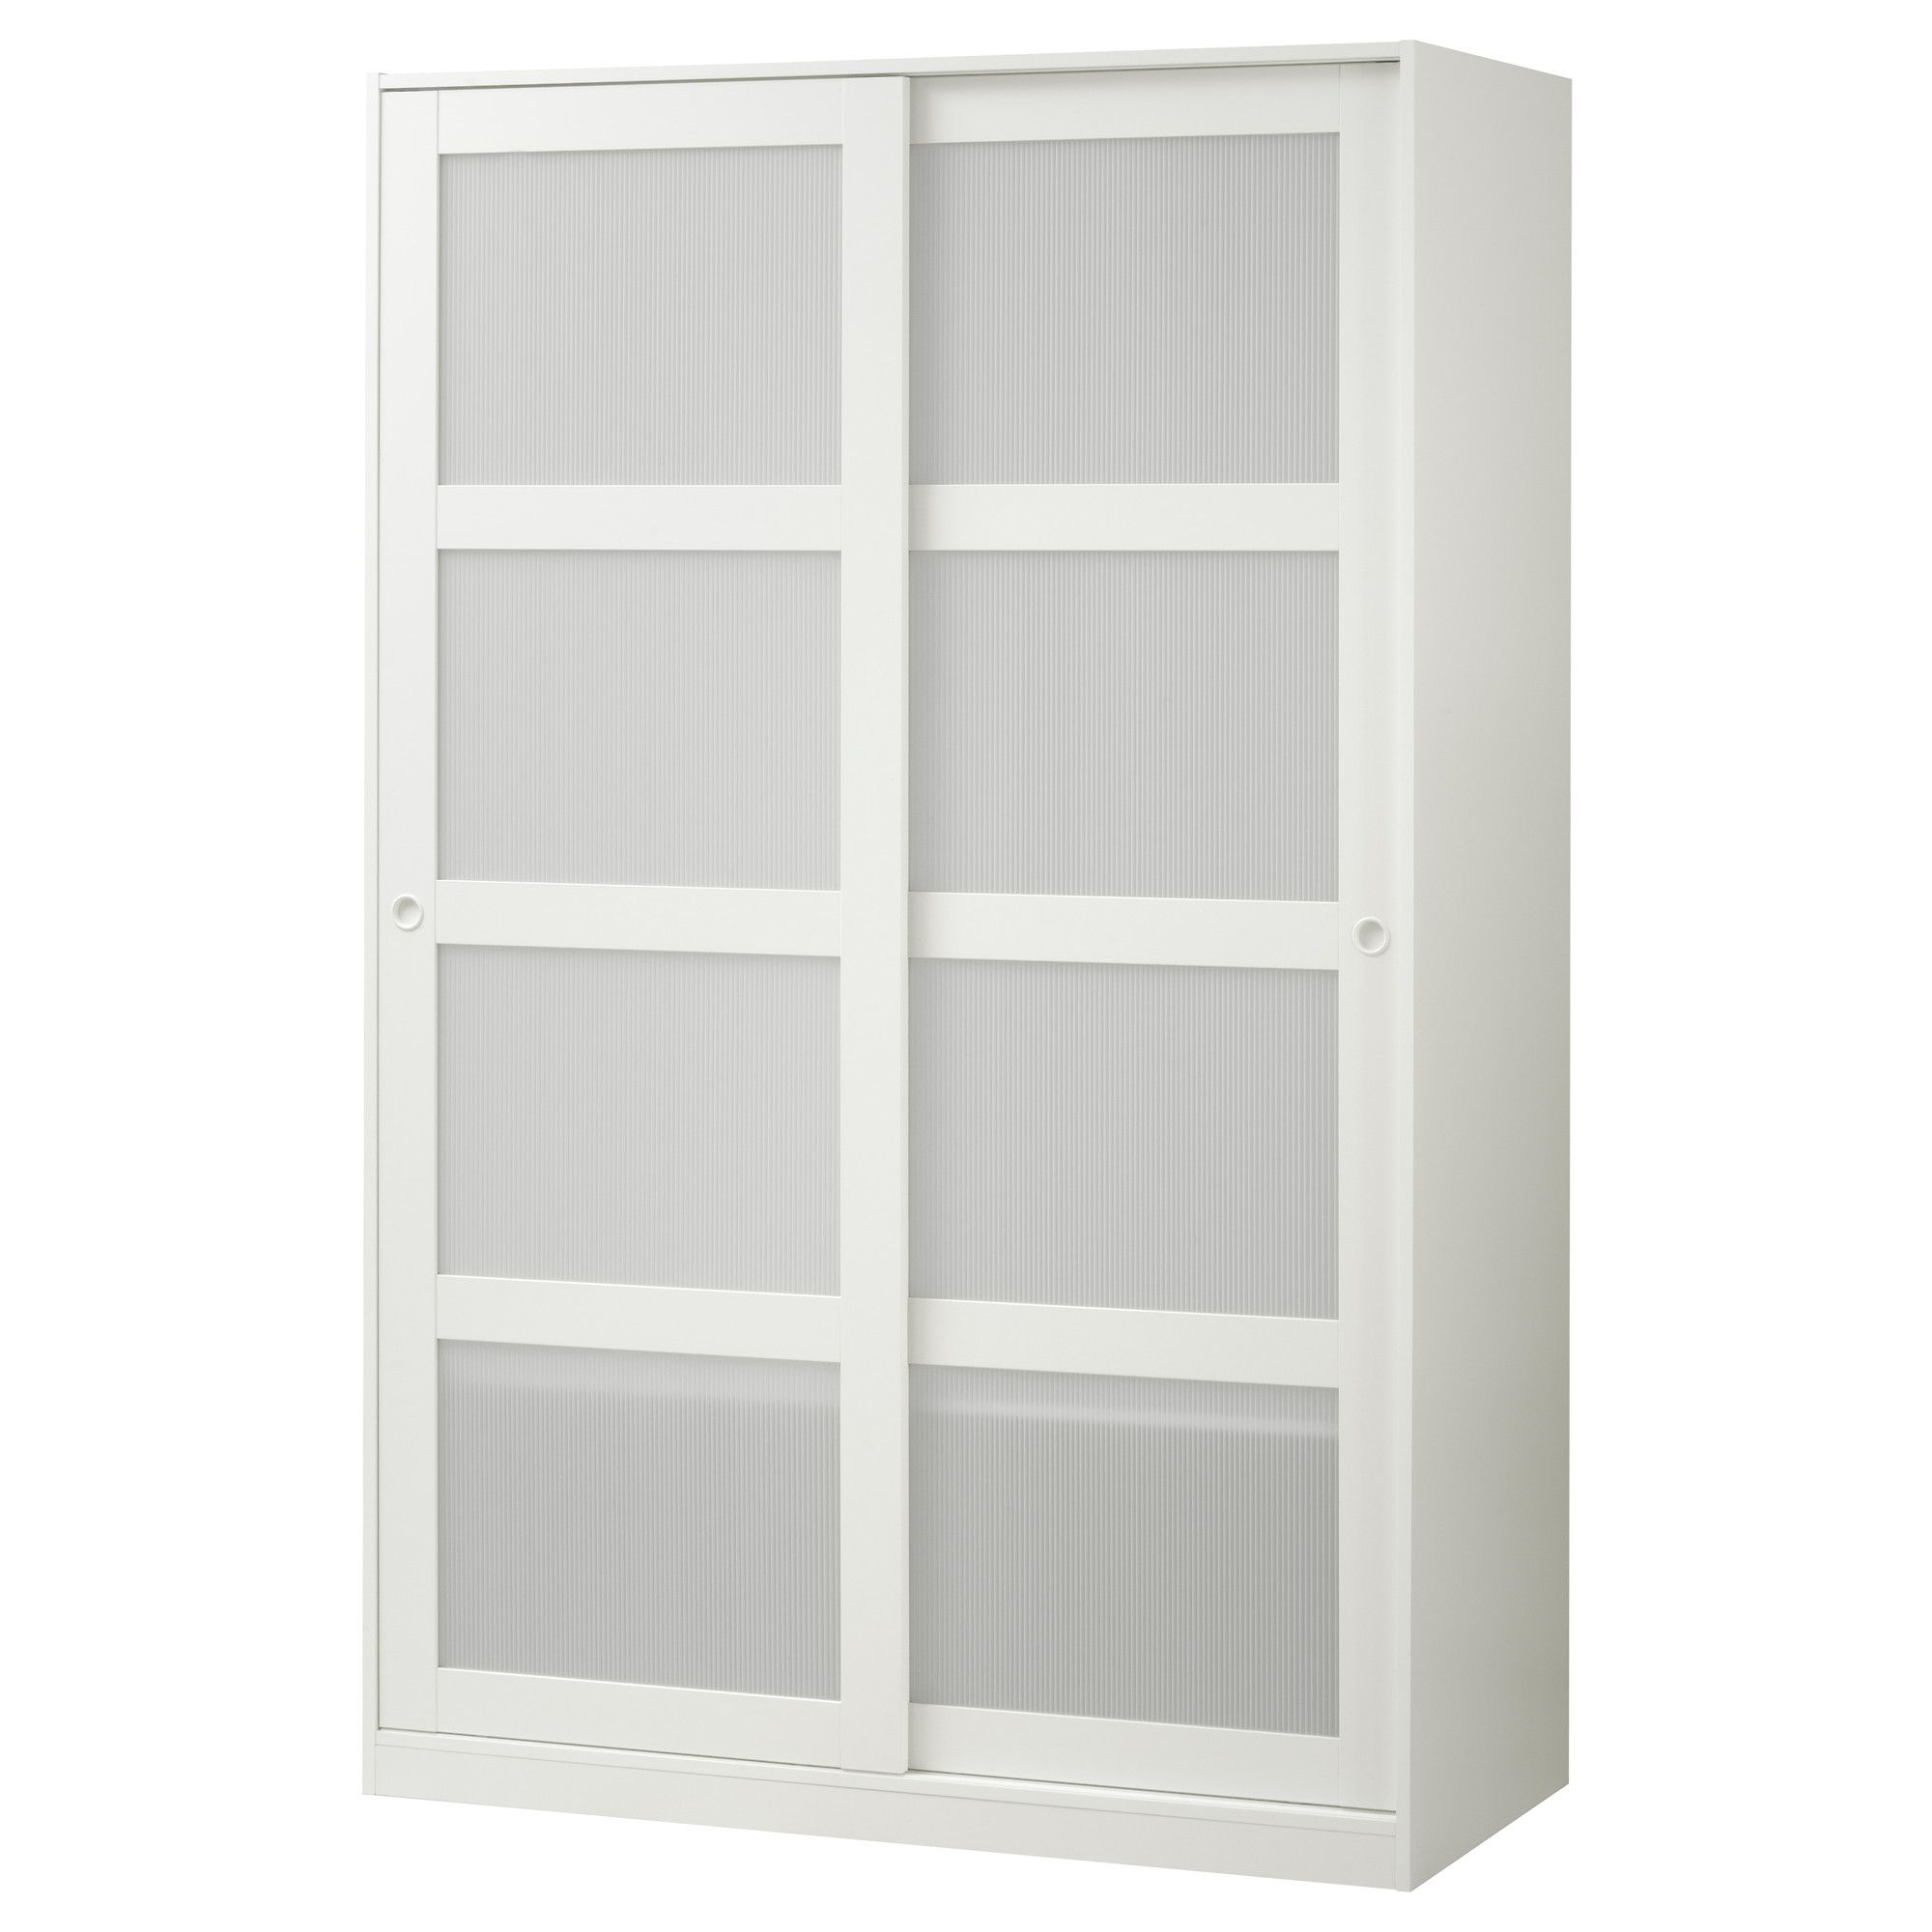 kvikne wardrobe with 2 sliding doors white sliding door doors